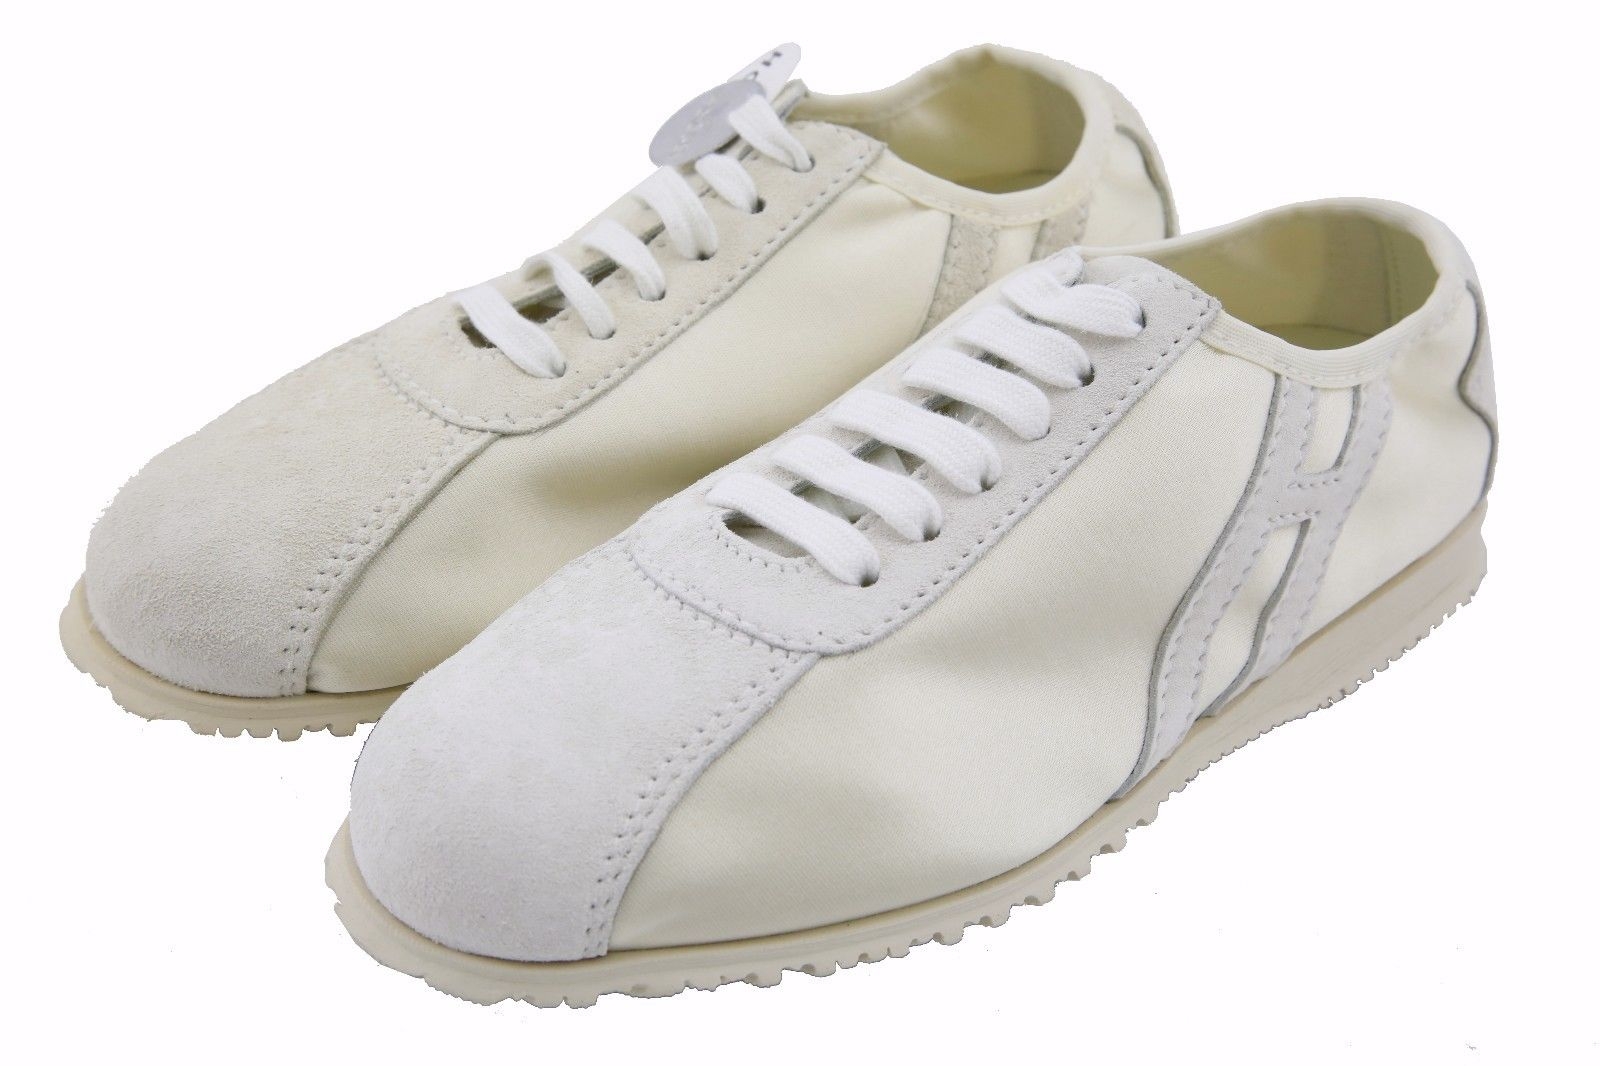 Hogan by TOD'S Women's Stripe Lace Up White Shoes Sneakers US 5.5 / 35.5 NEW